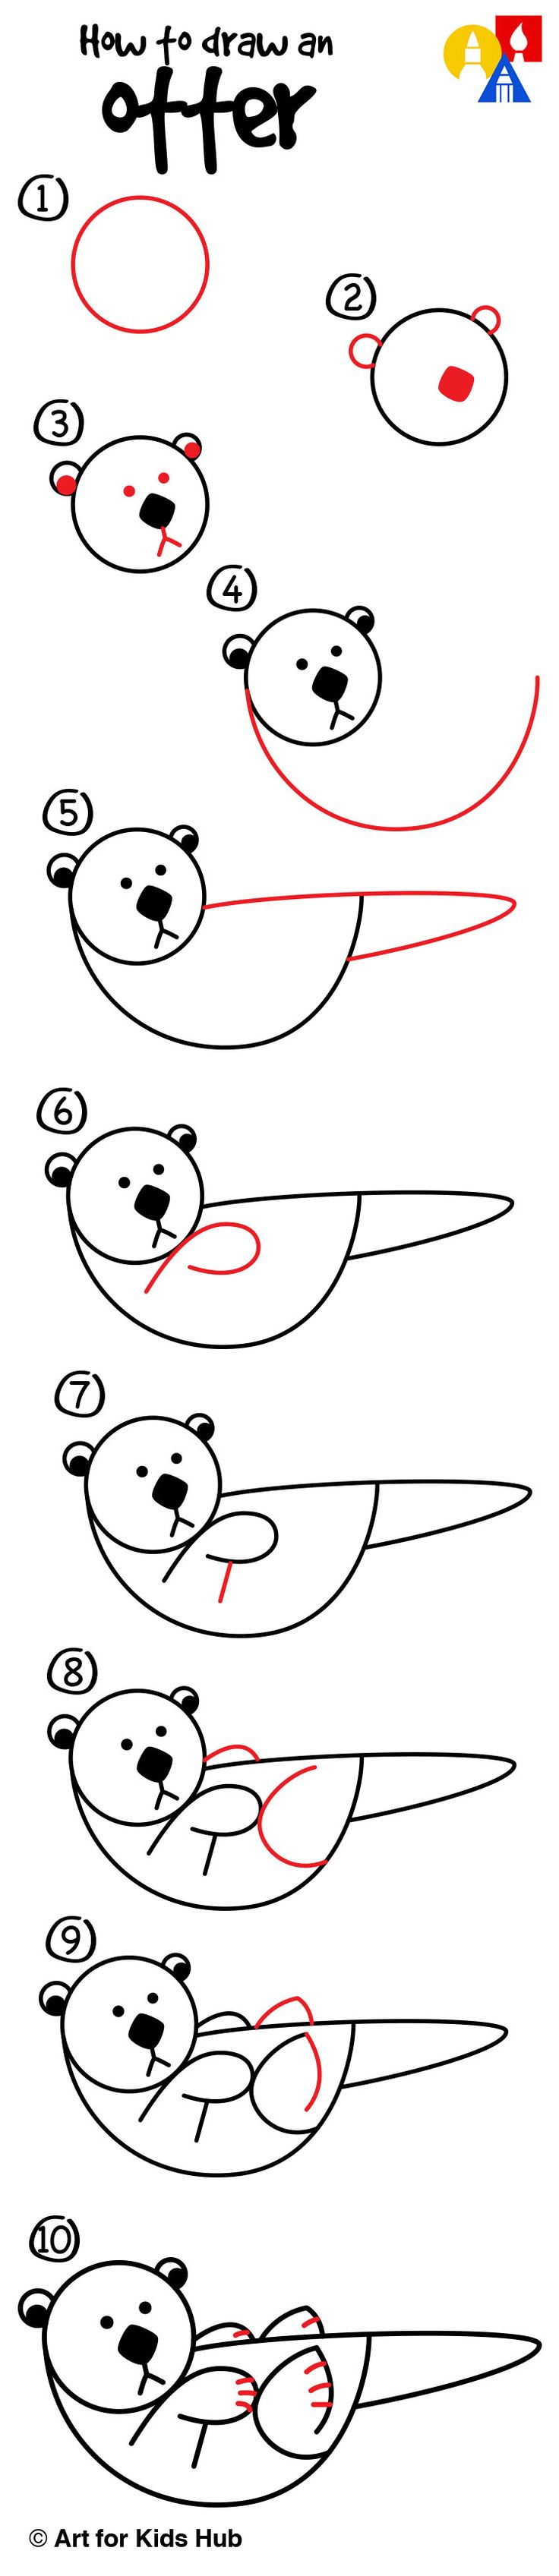 How To Draw An Otter With Shapes  Art For Kids Hub